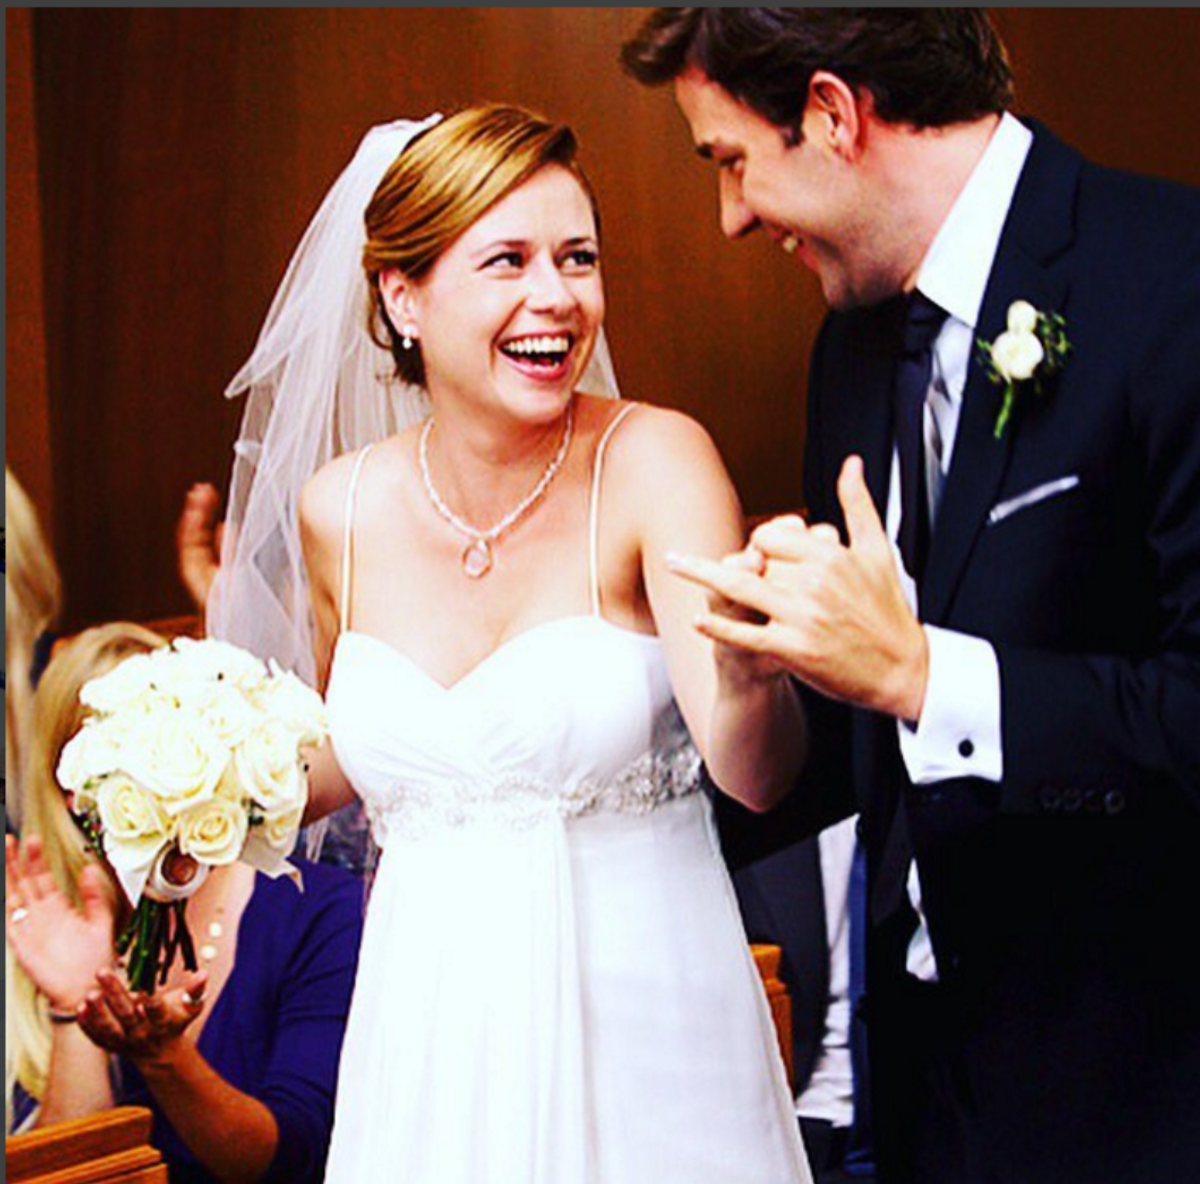 8 Things You Know If You've Found The Jim To Your Pam